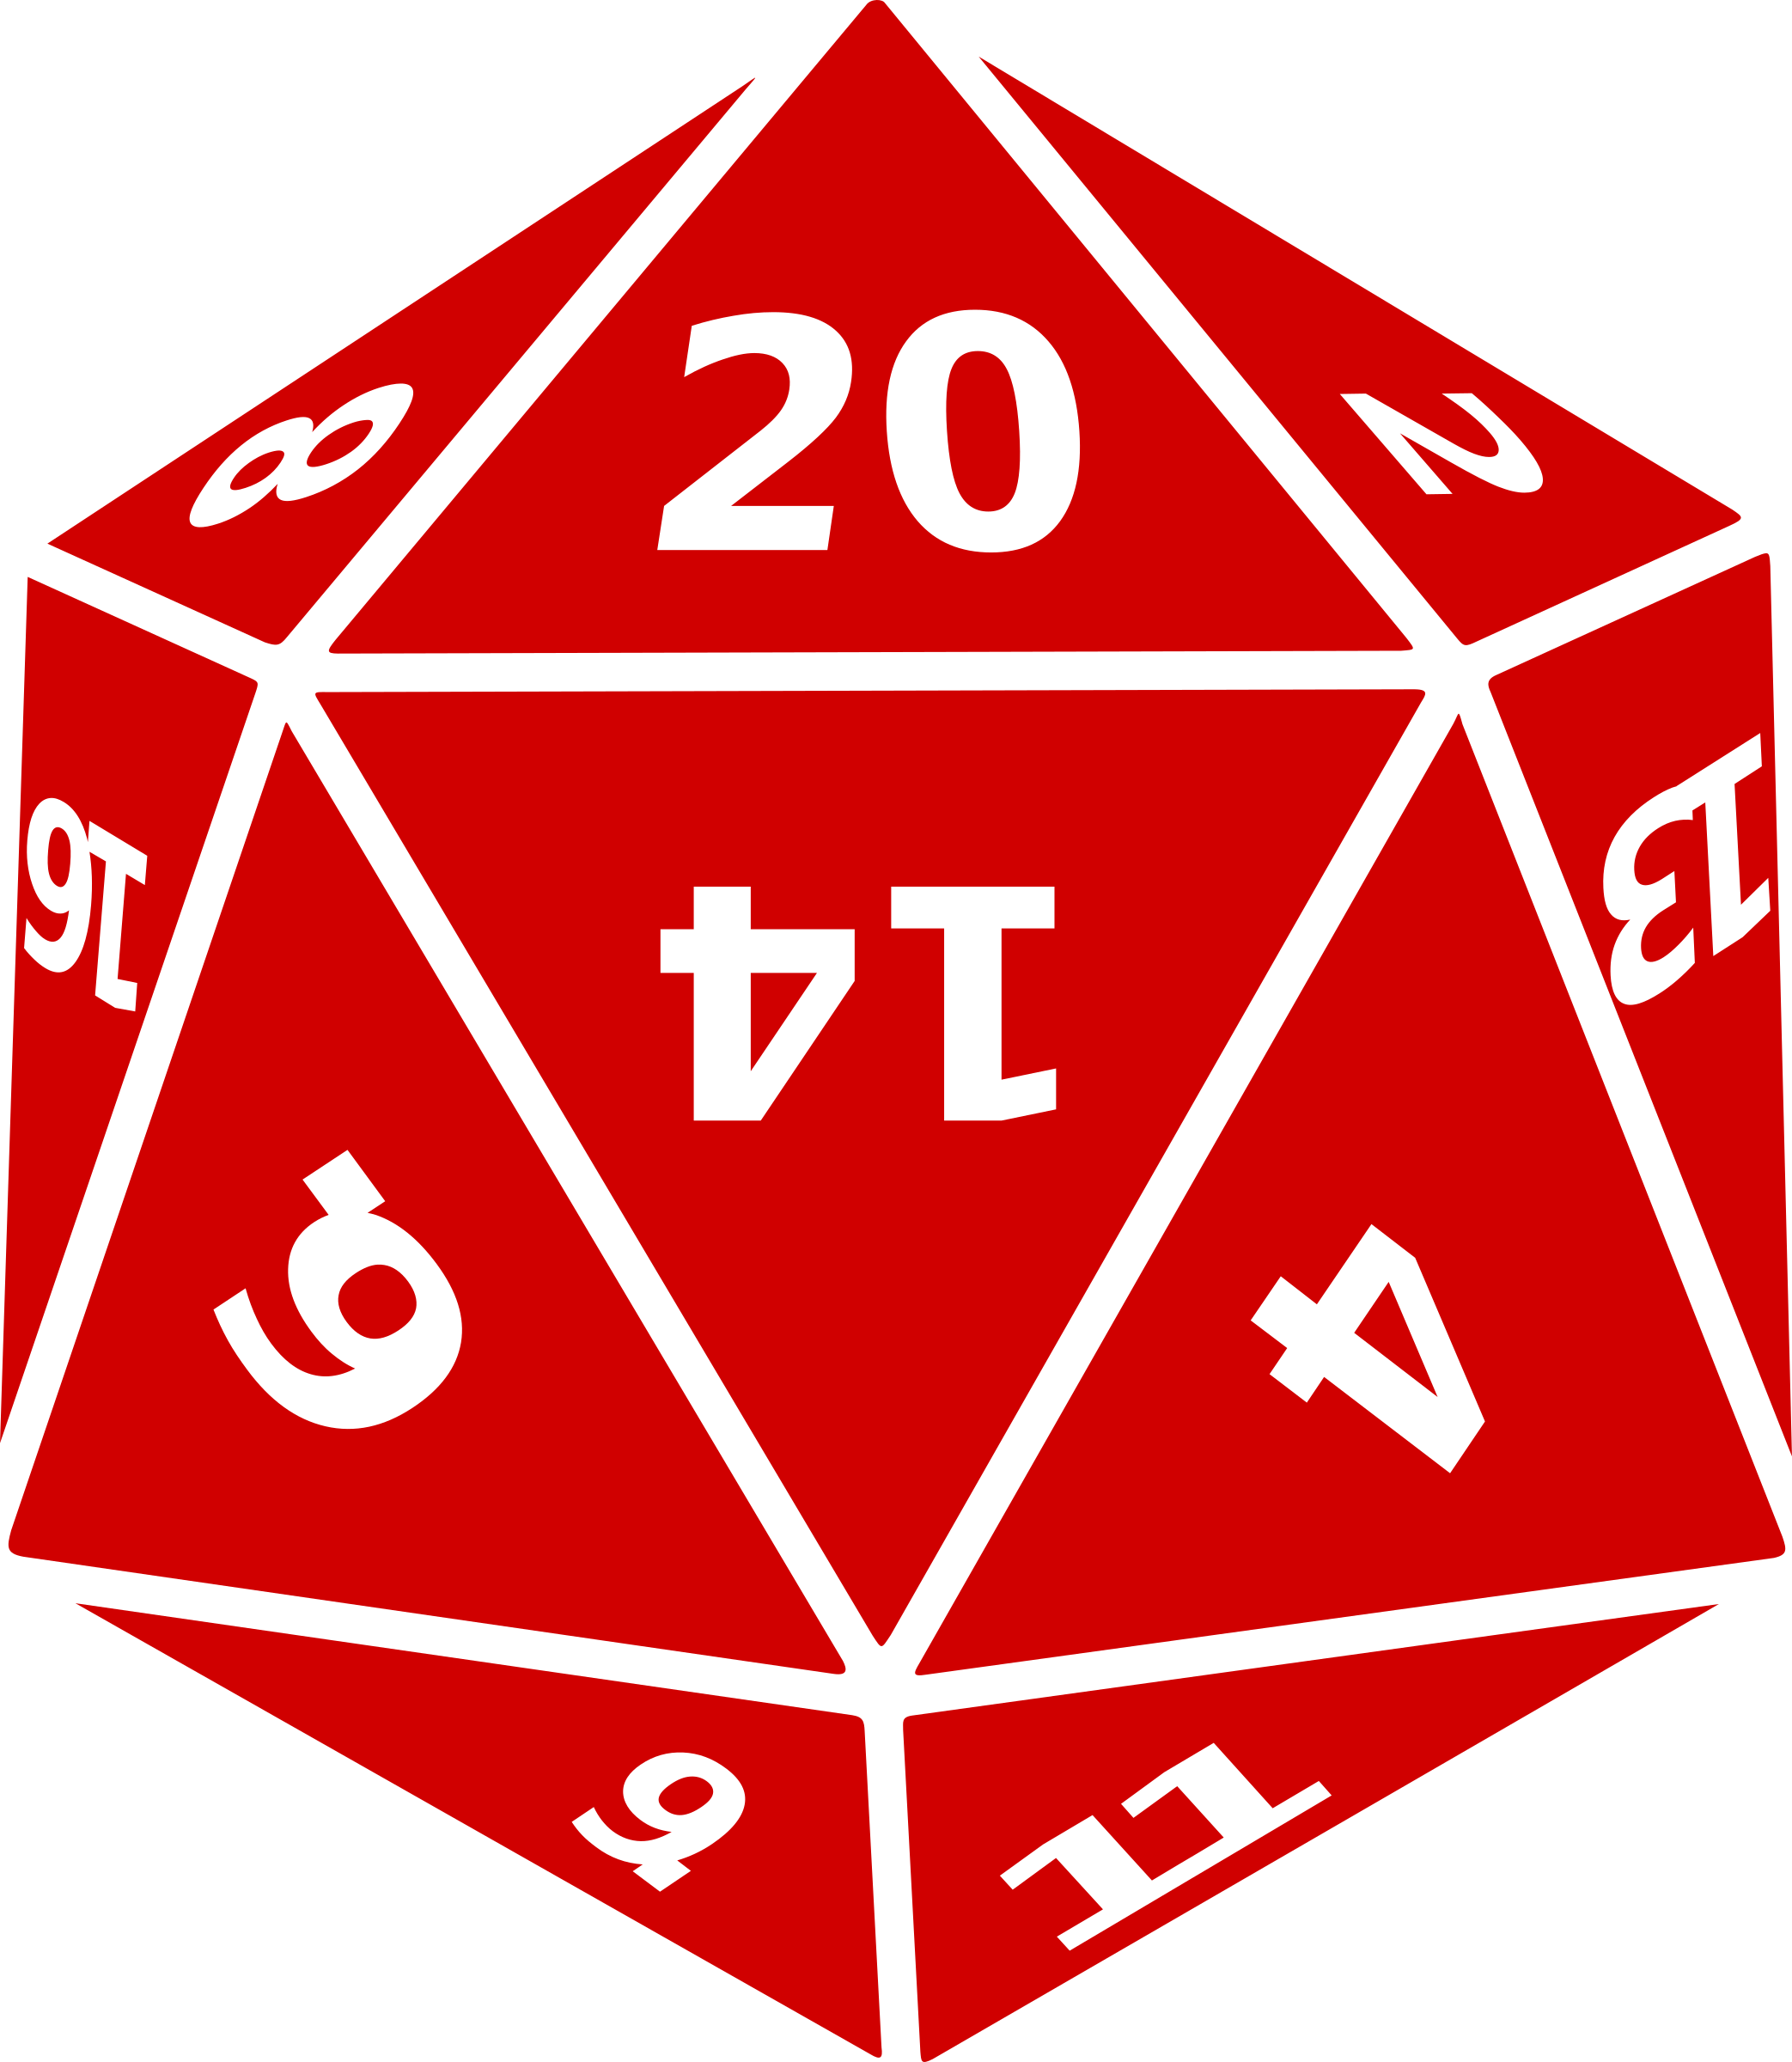 Twenty-Sided Dice by wirelizard